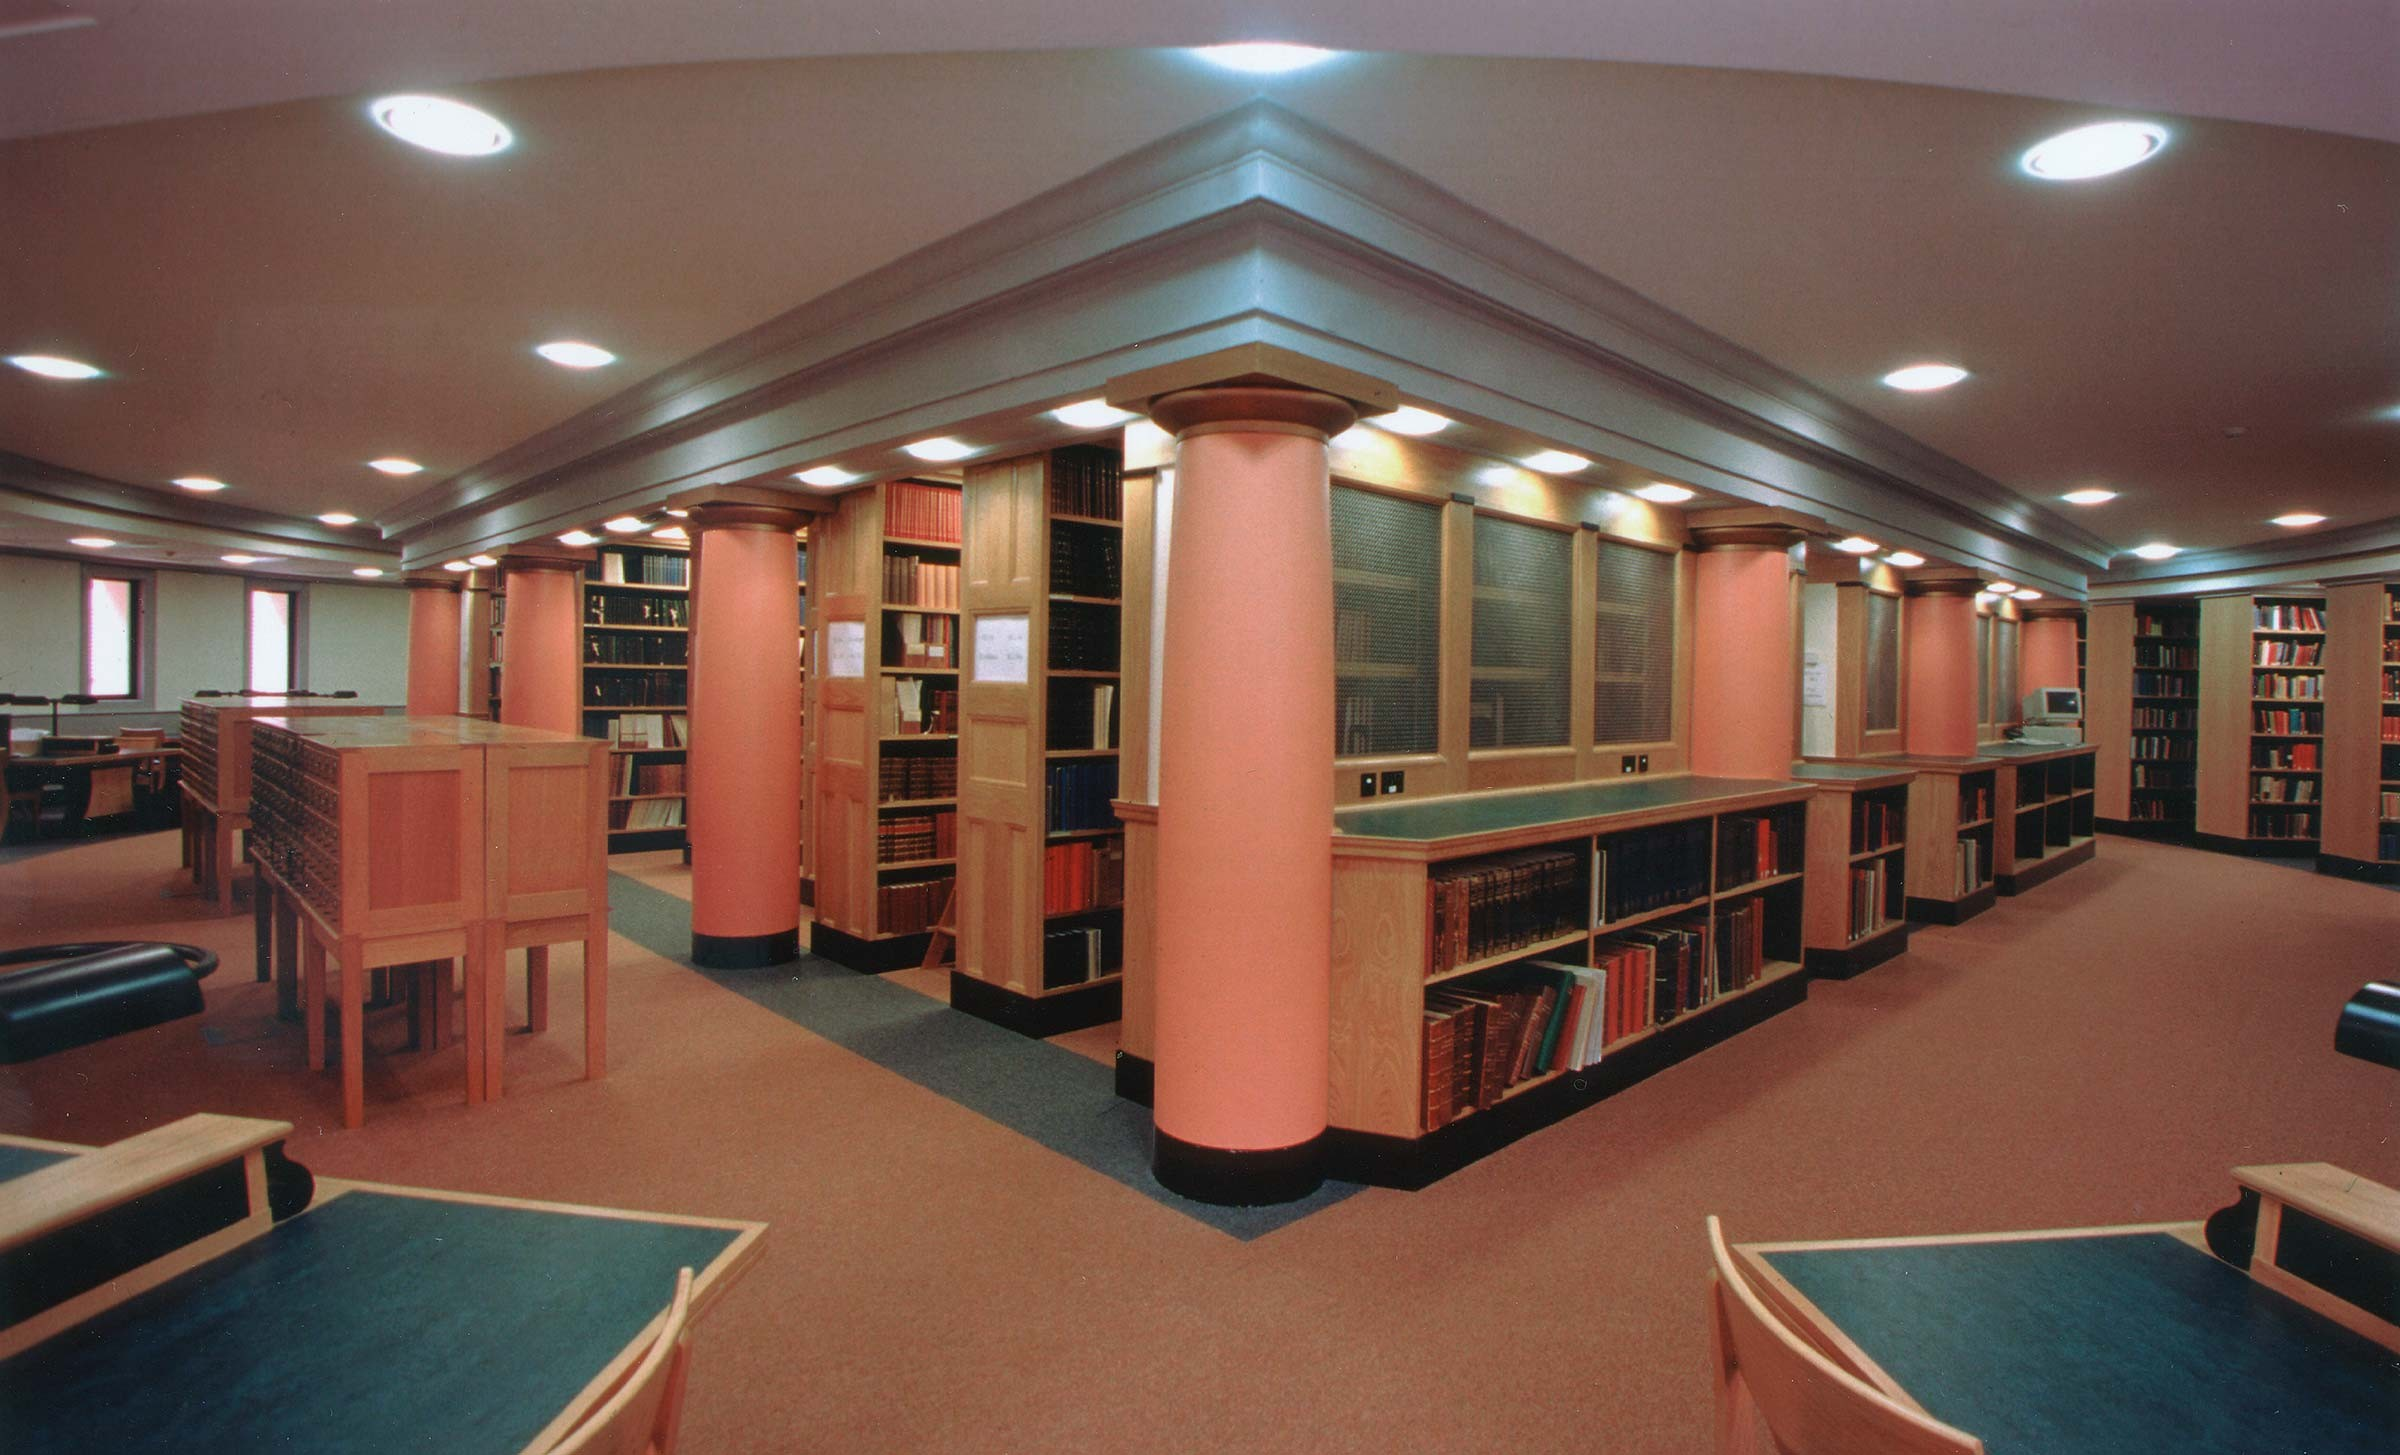 Sackler Library interior for Oxford University, Oxford